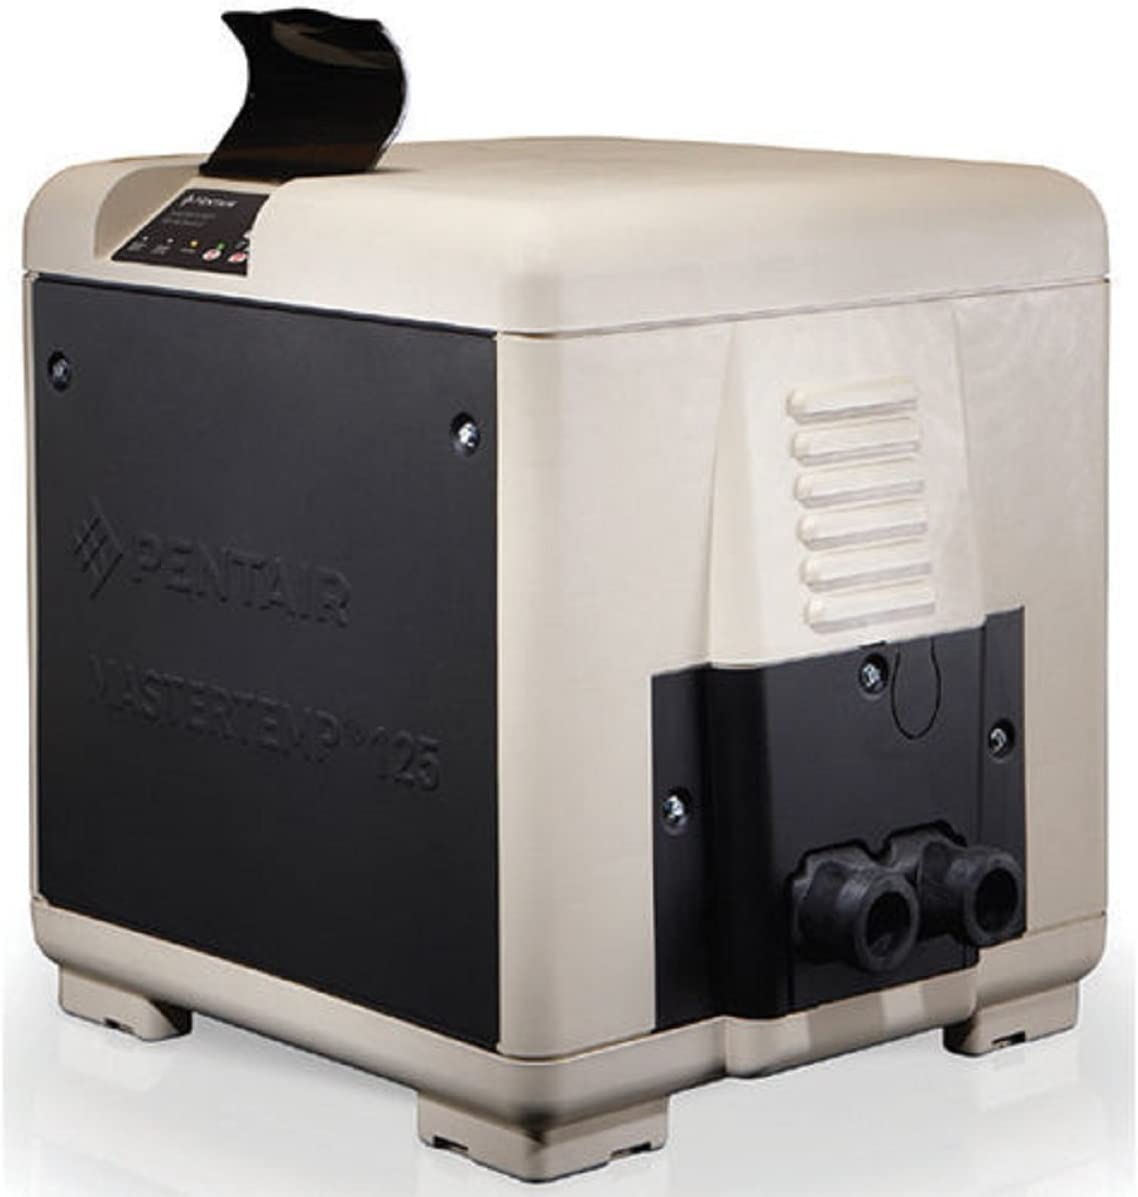 Best pool heater-Pentair Master temp gas heater (Best affordability)